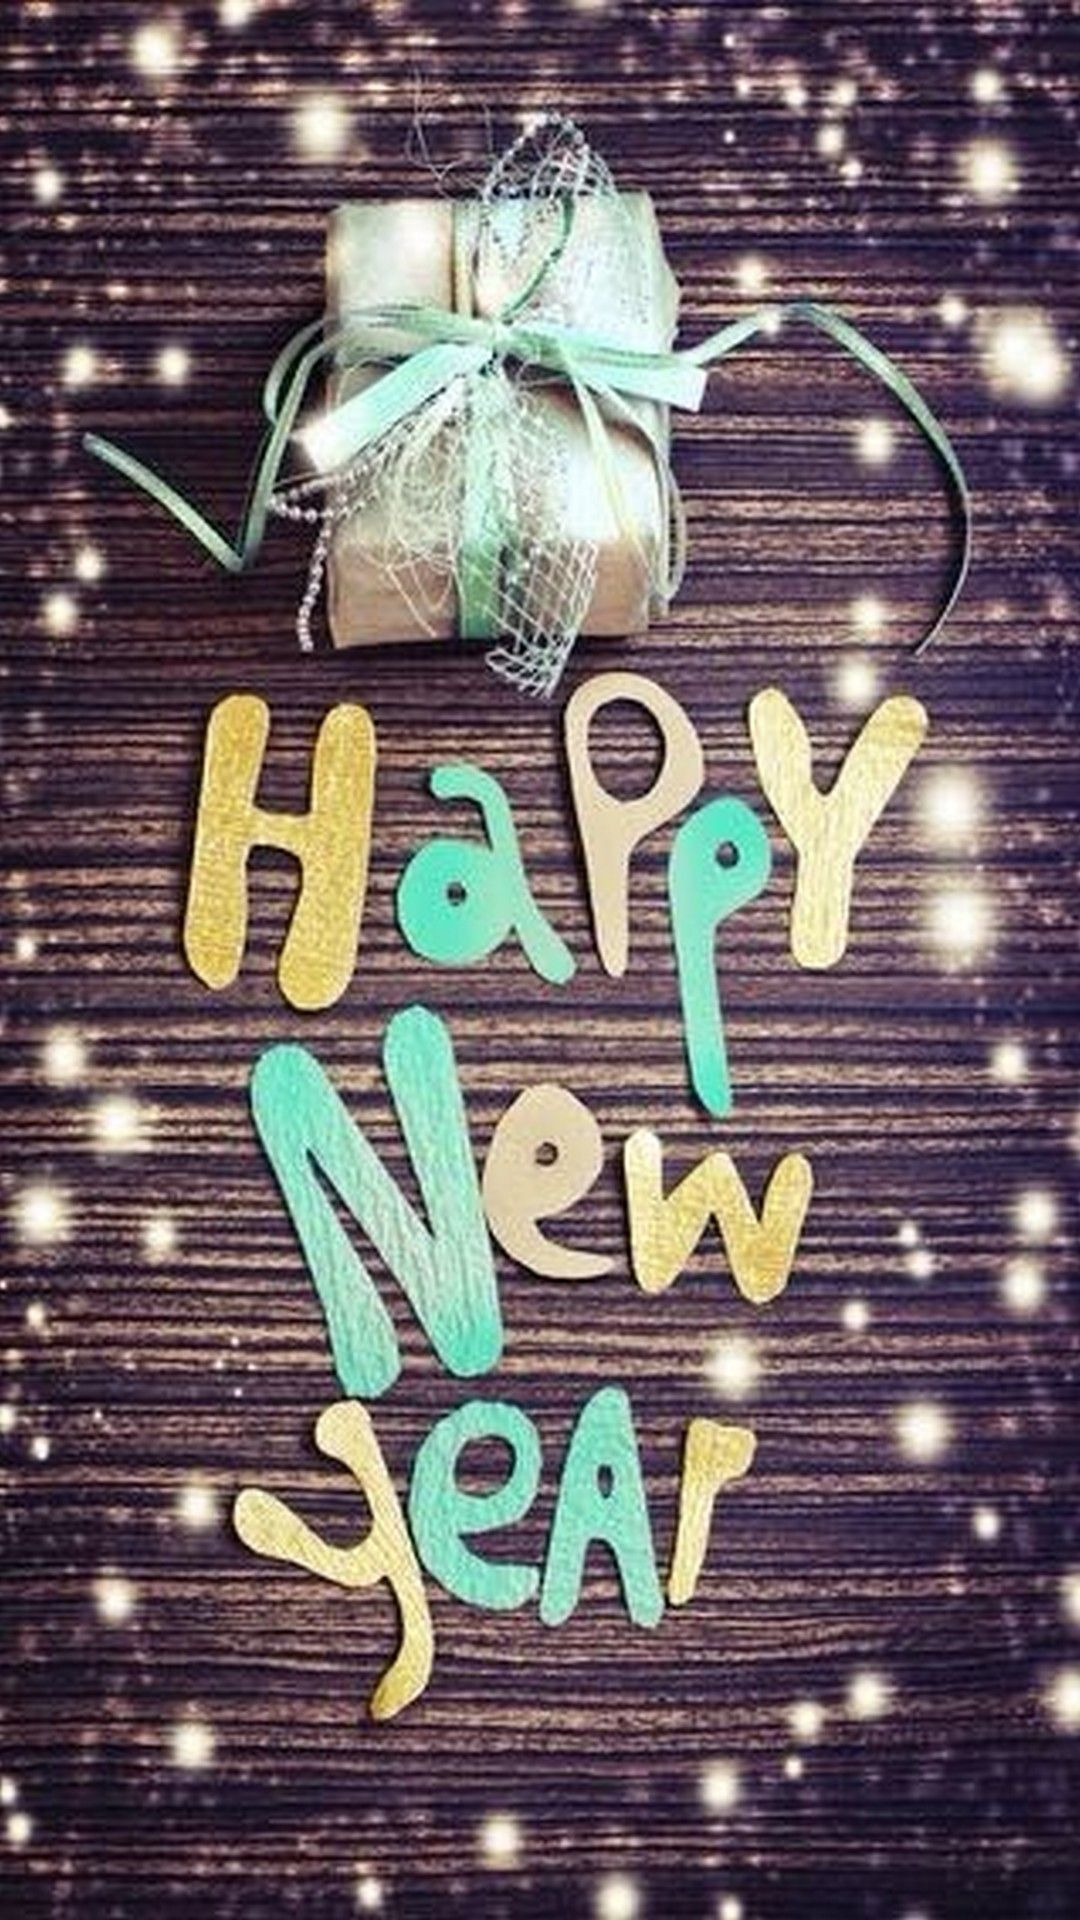 happy new year 2018 wallpaper for iphone best iphone wallpaper